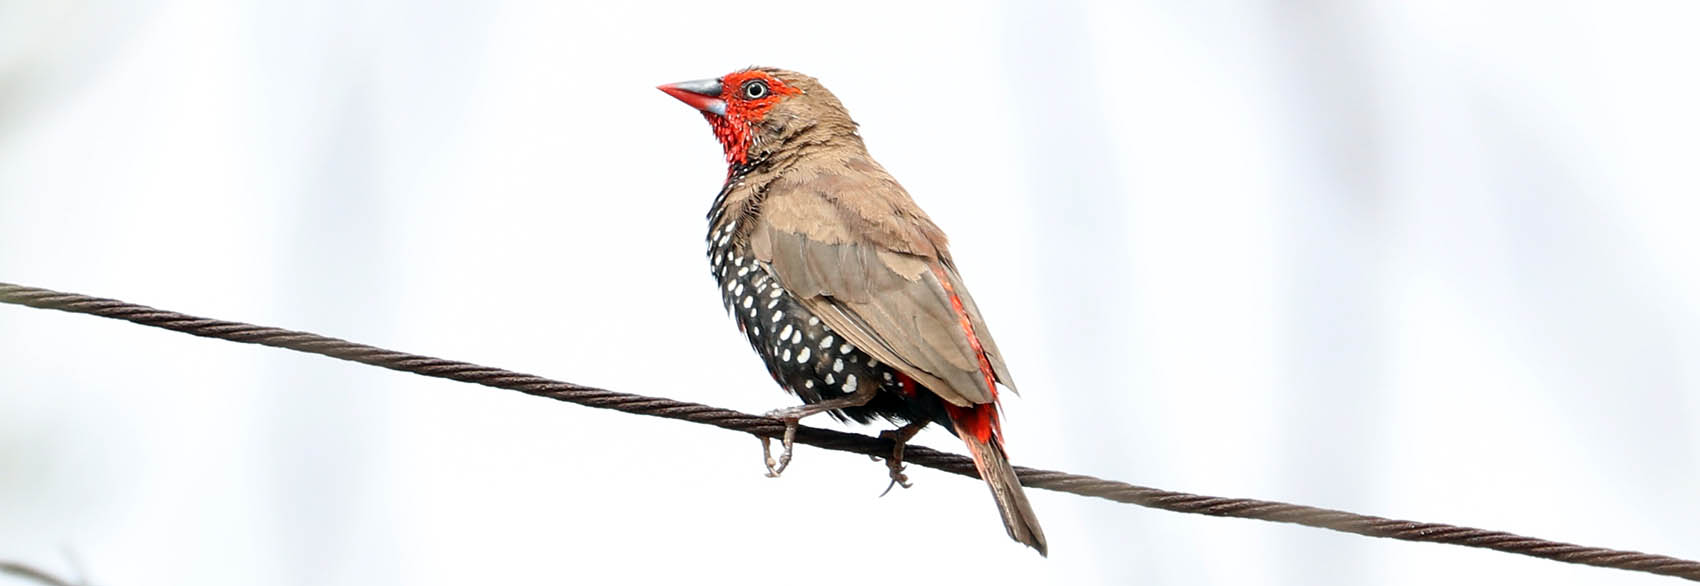 Painted Finch (image by Damon Ramsey)